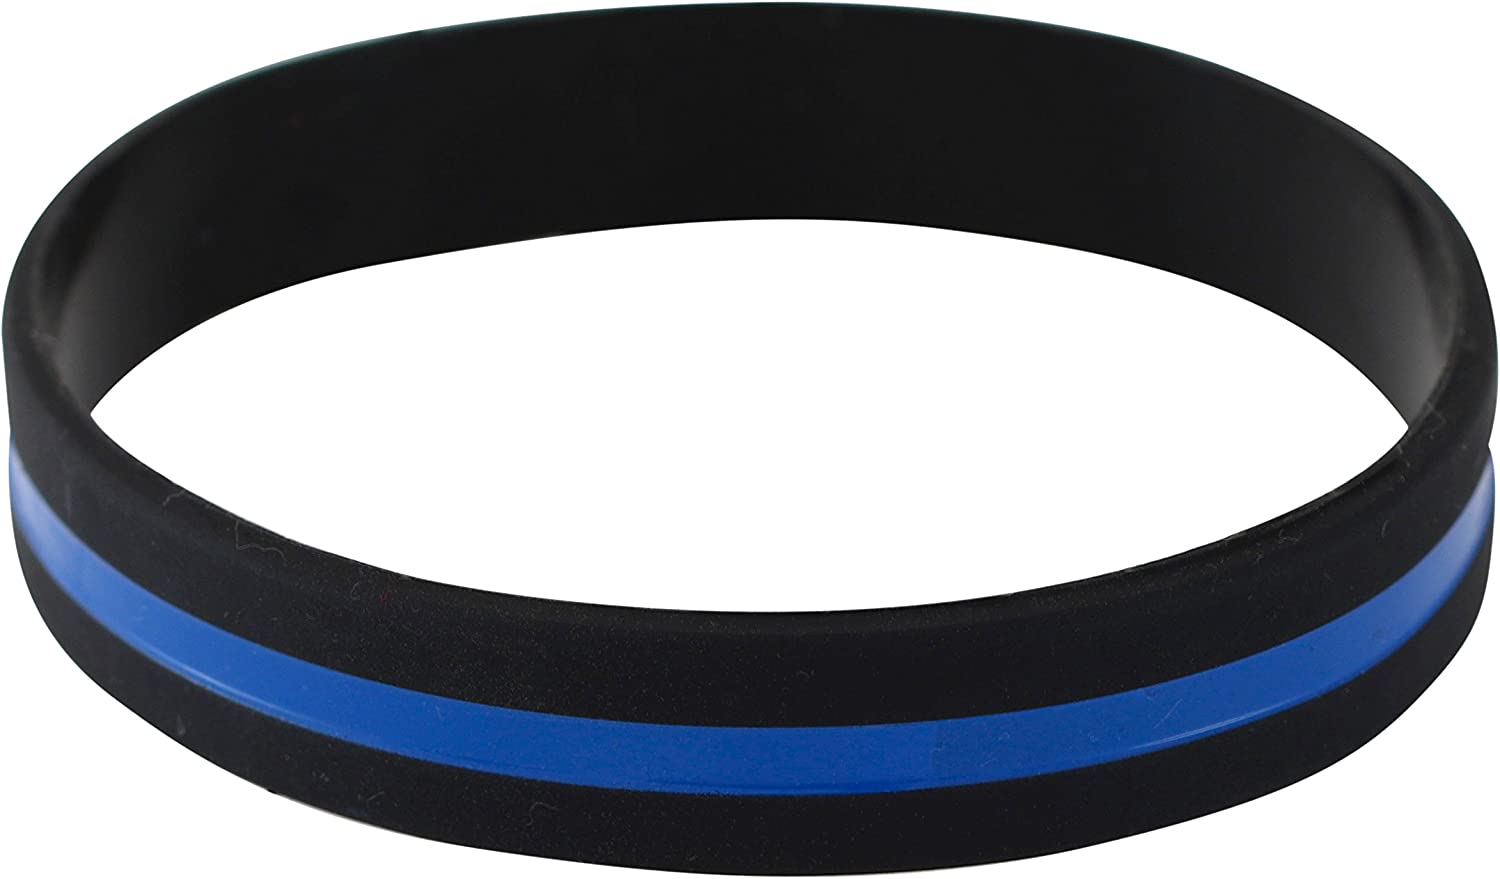 Emblematic Jewelry Police Officers Patrol Awareness Support Thin Blue Line Silicone Wristband Bracelets Value Pack (1 Bracelet)